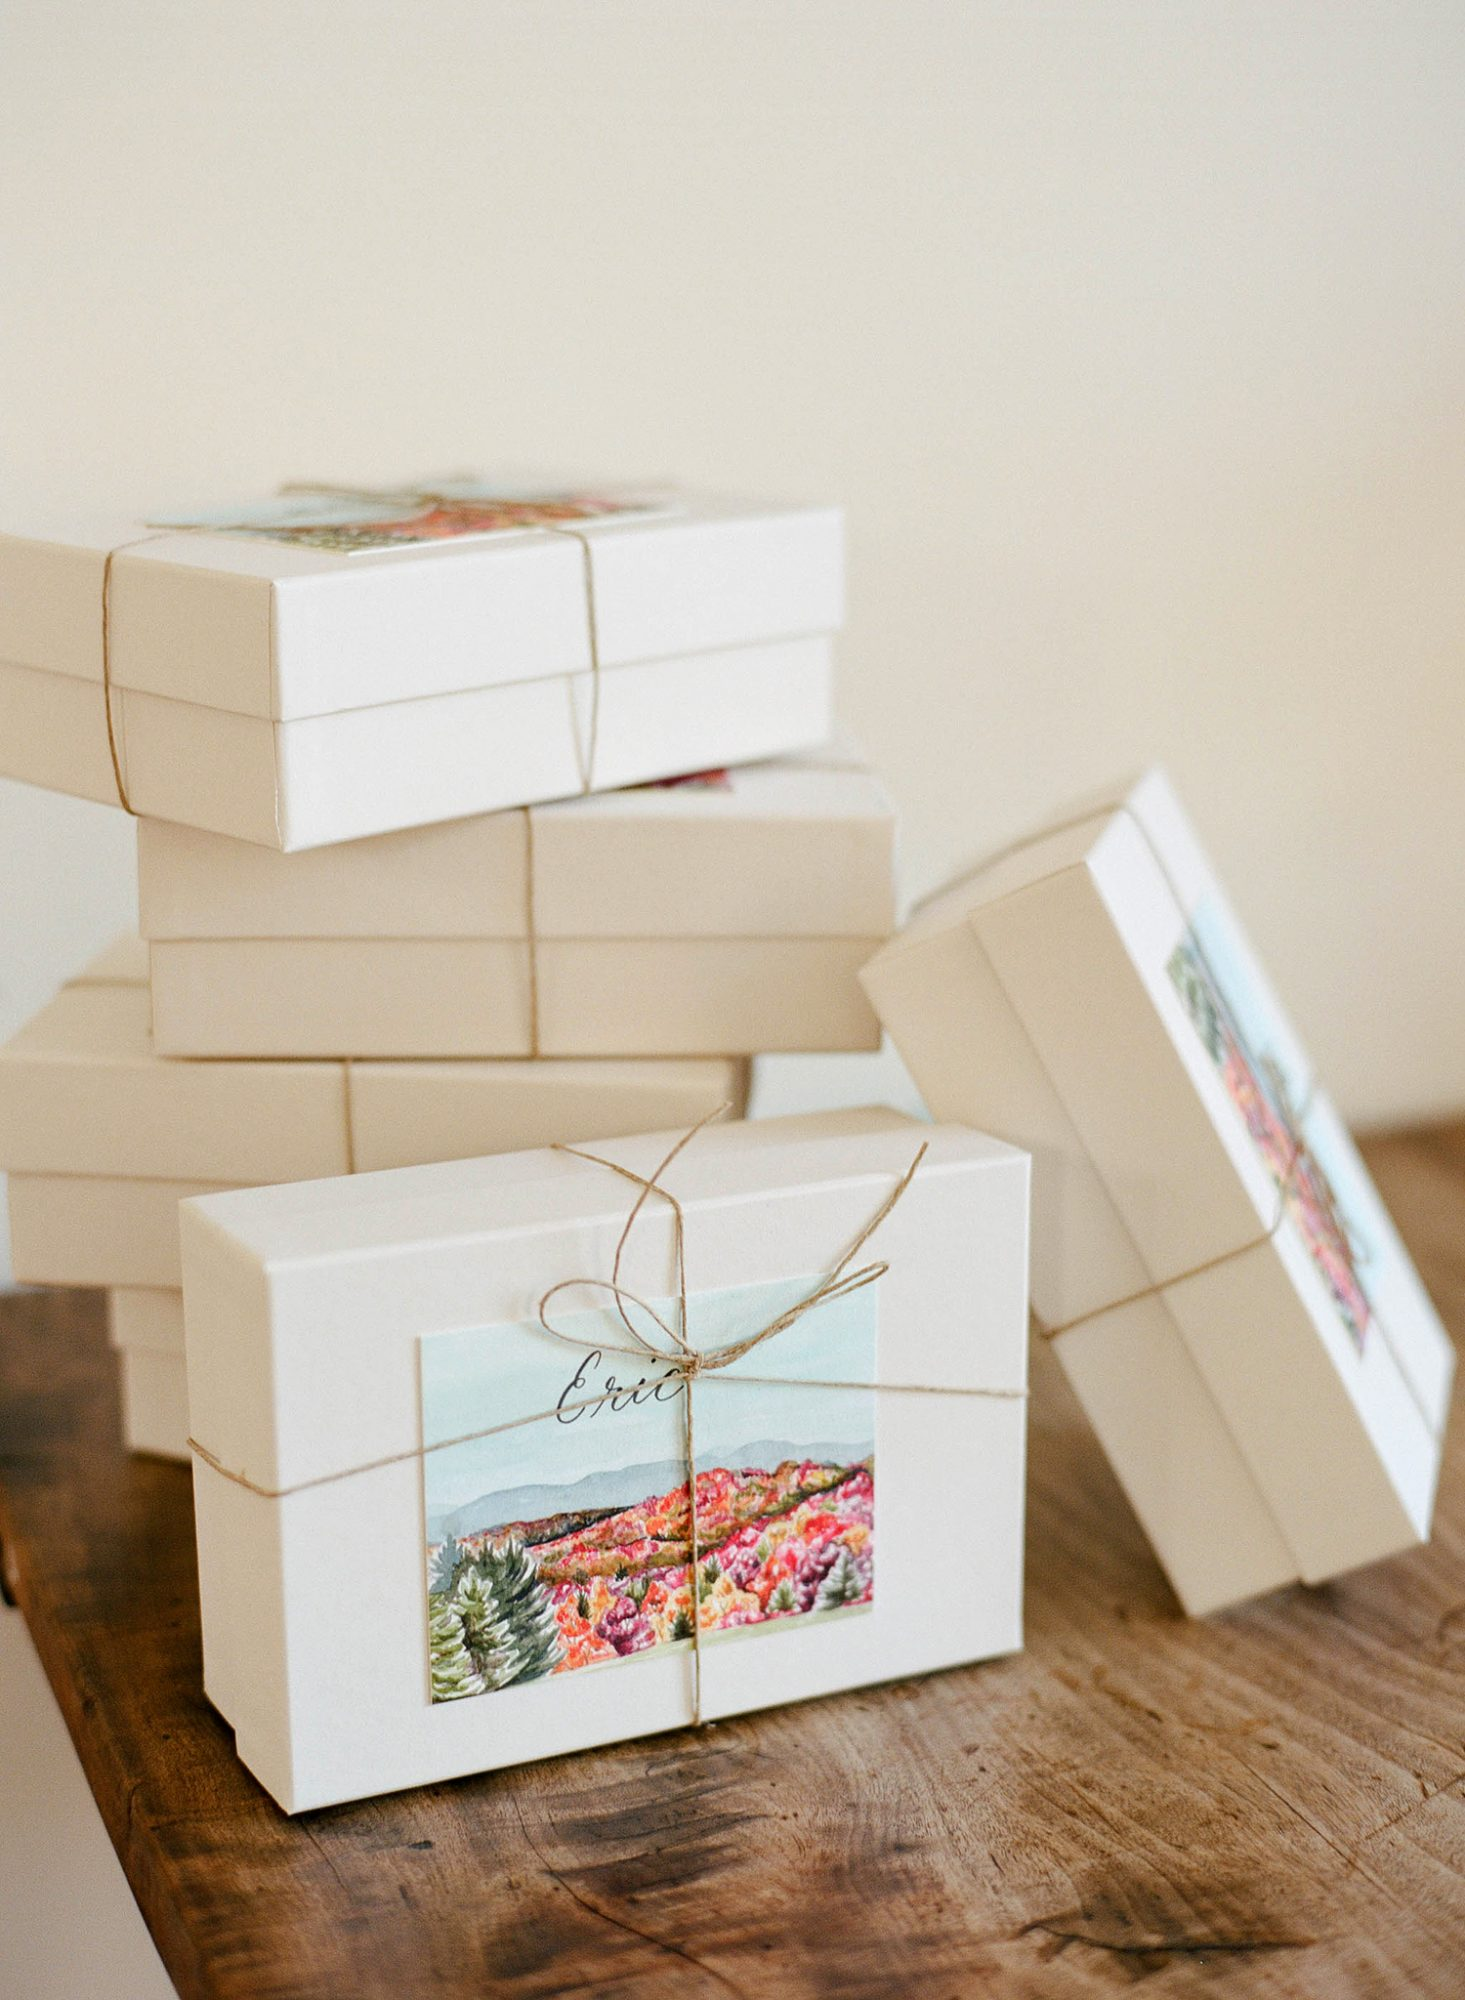 sarah jake wedding favors